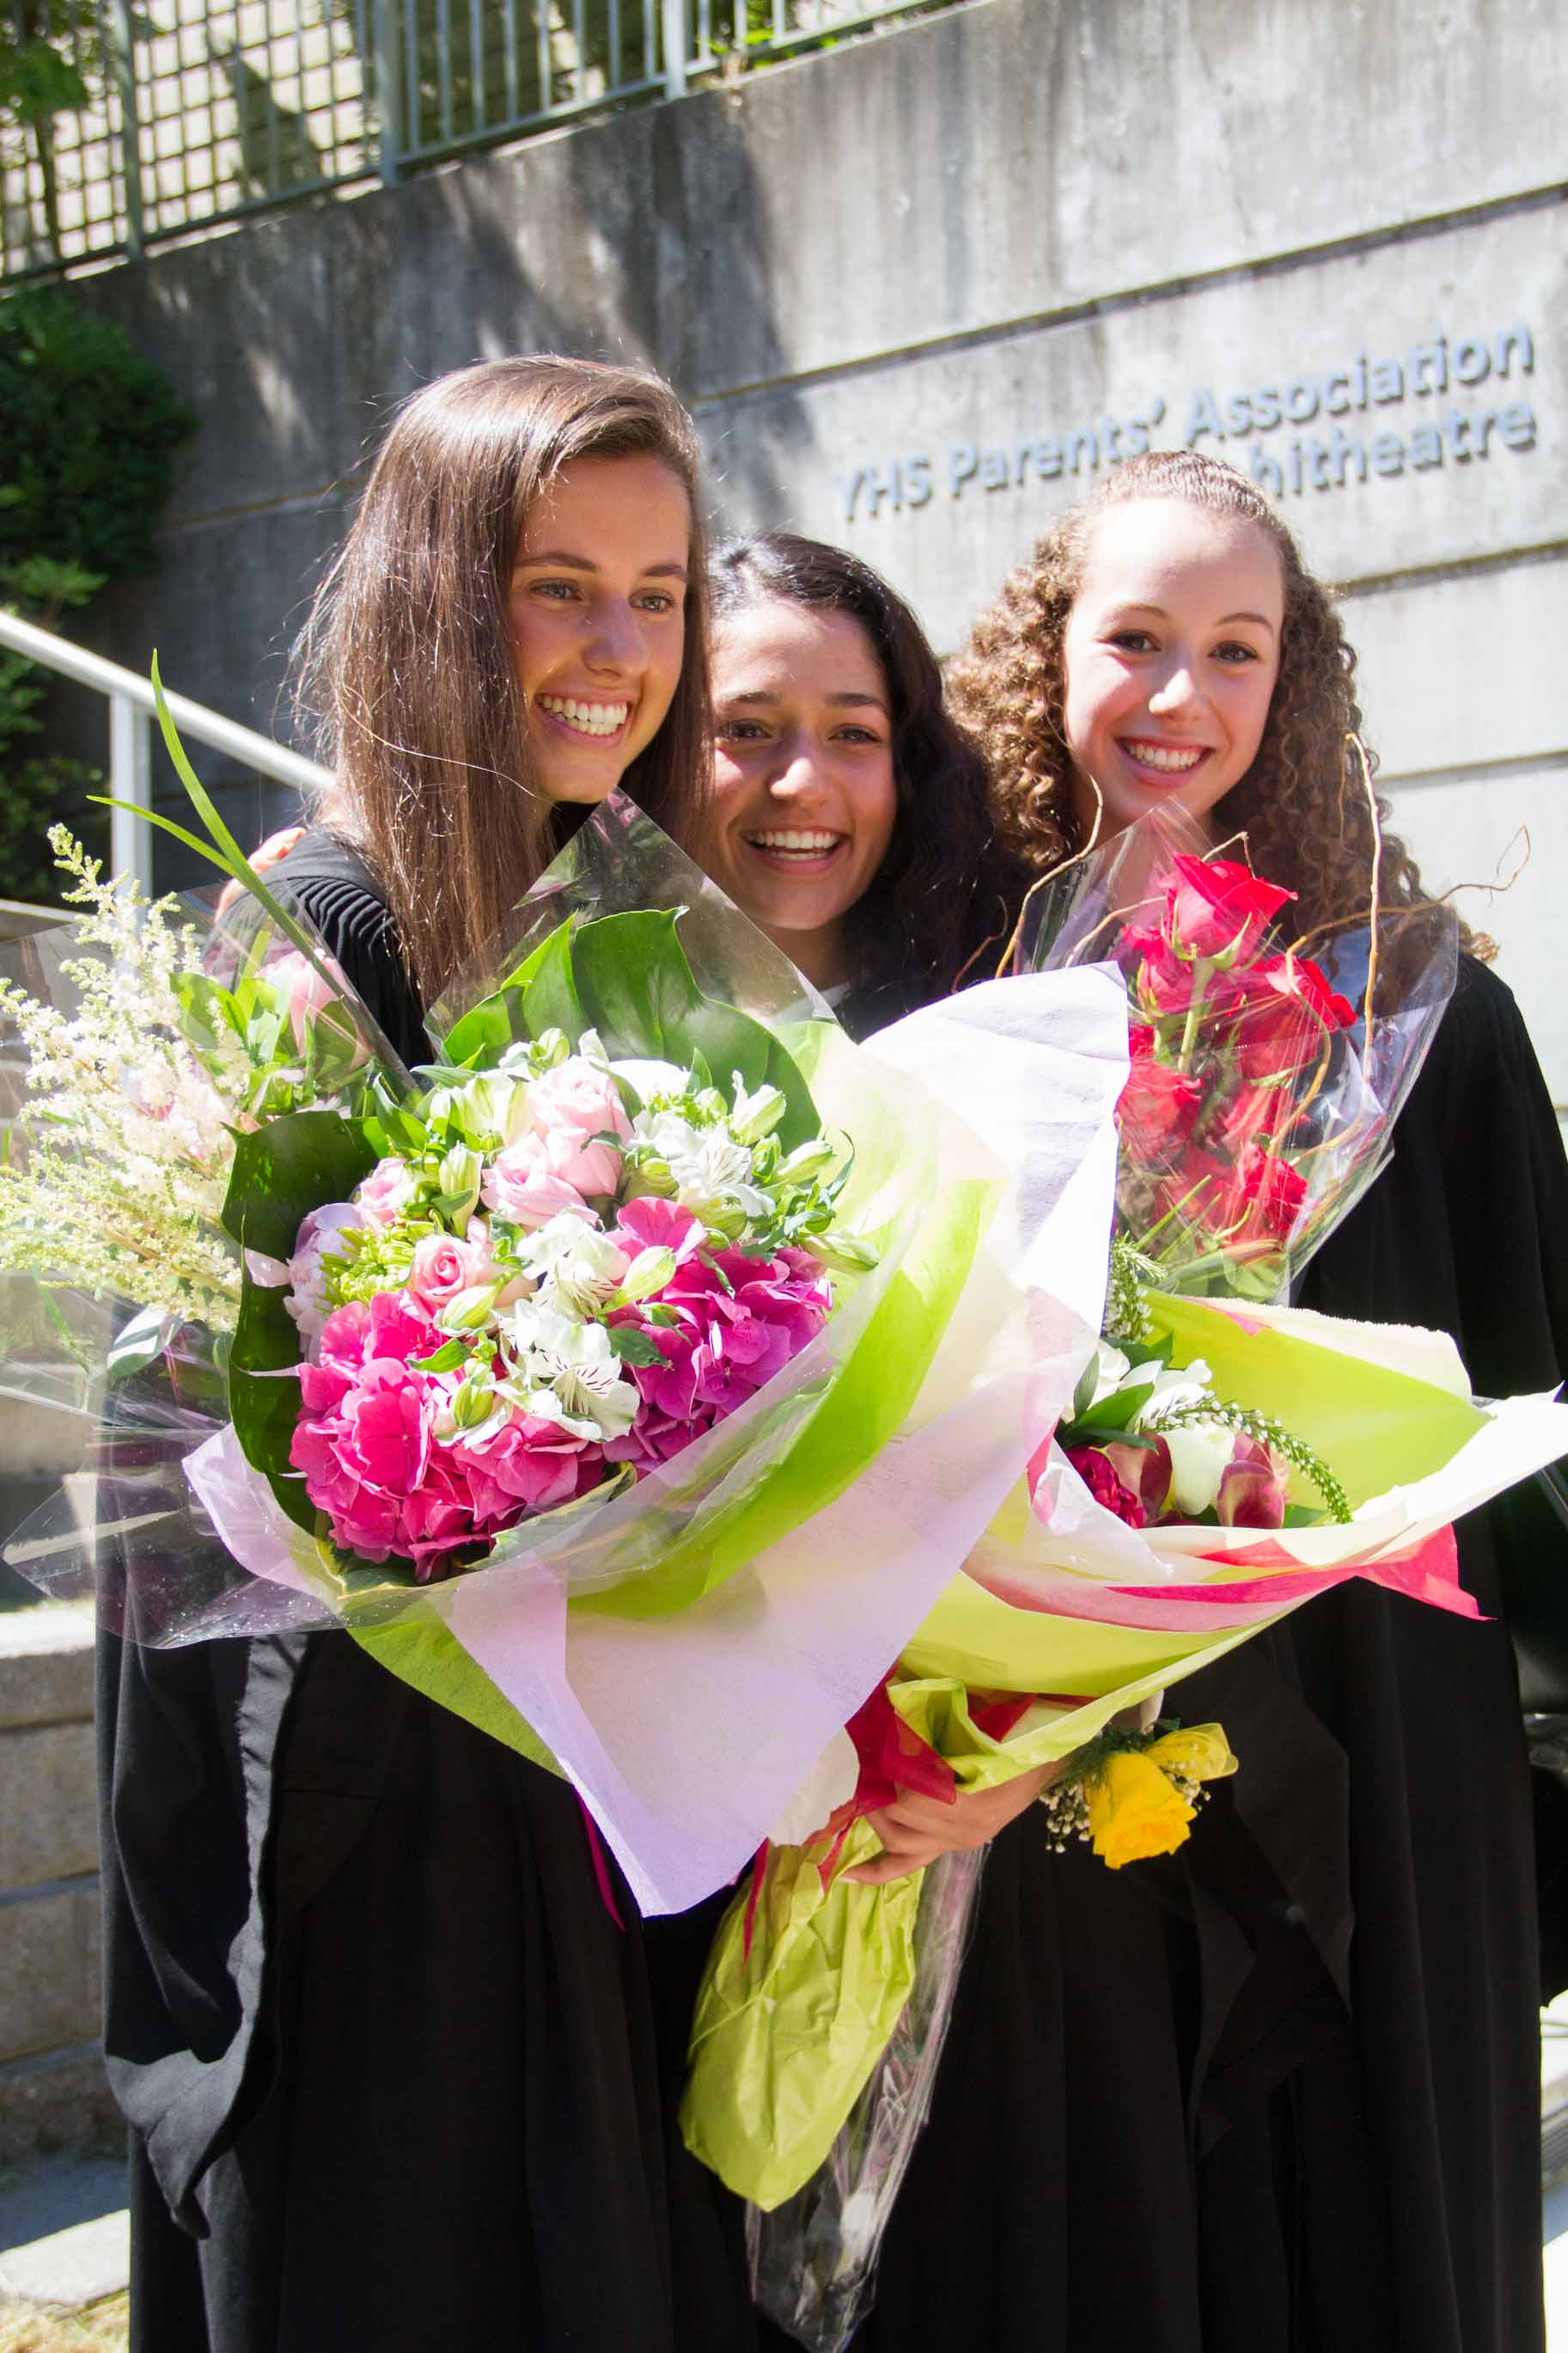 Ally and friends, on Graduation Day